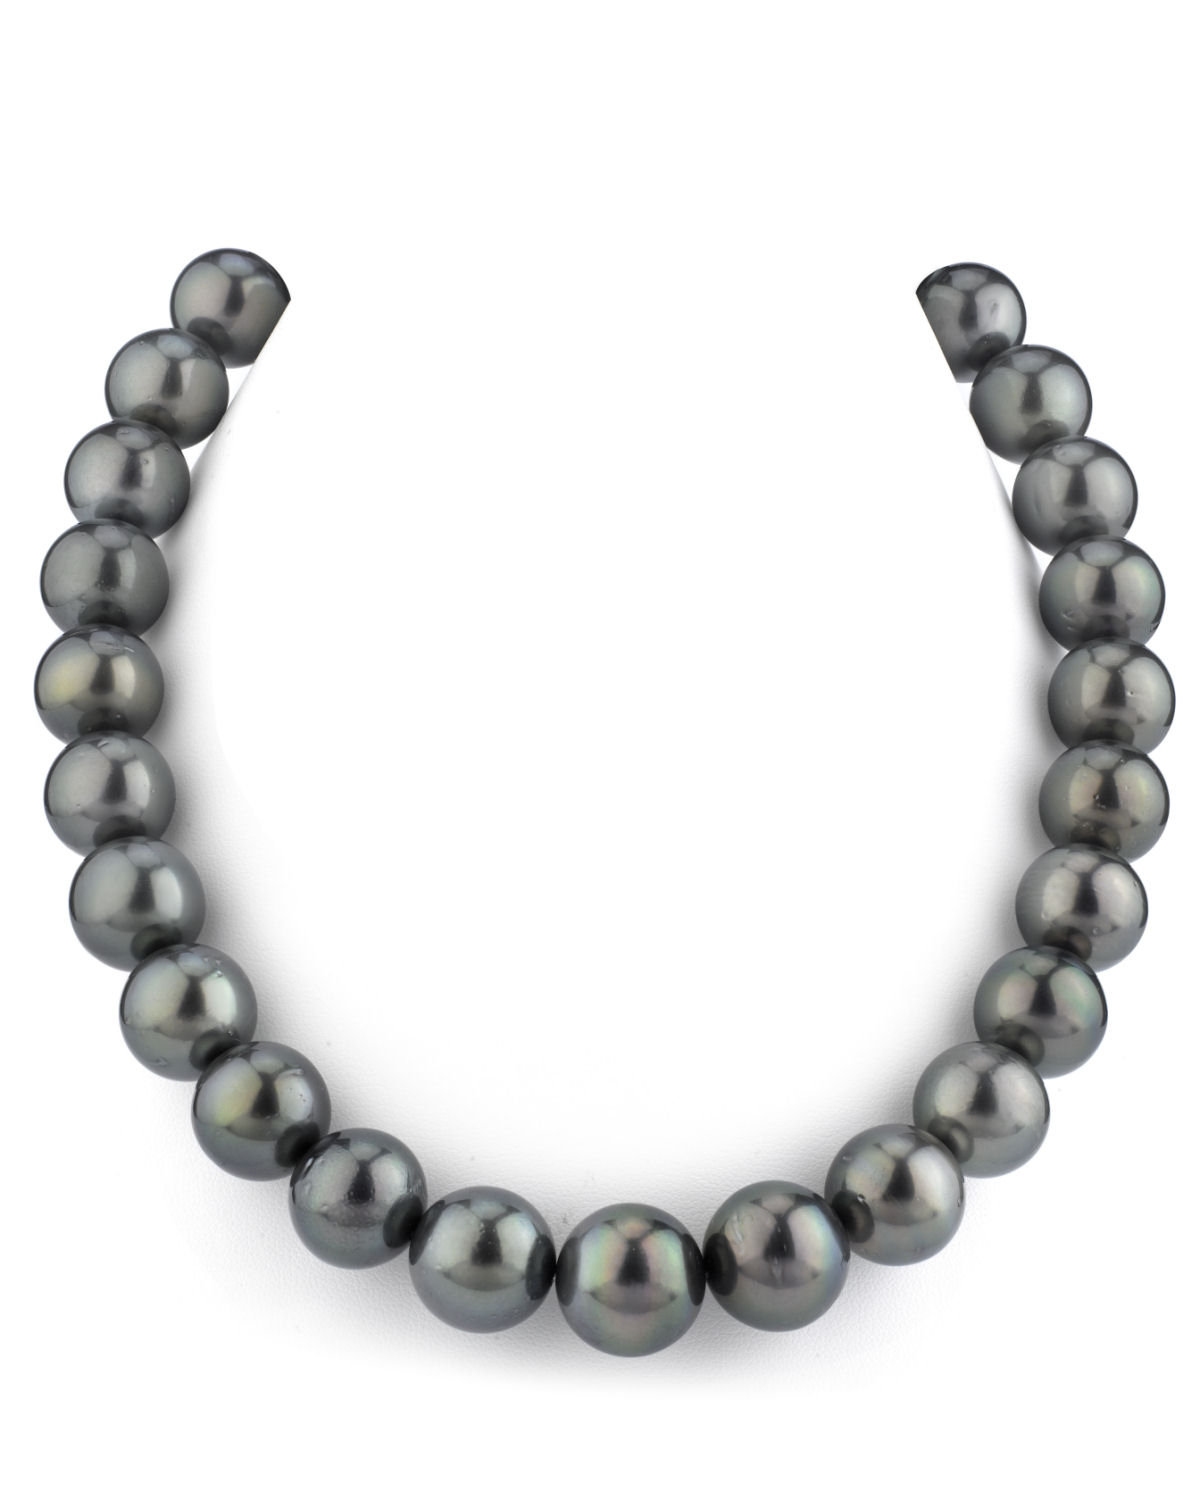 12-14mm Tahitian South Sea Pearl Necklace